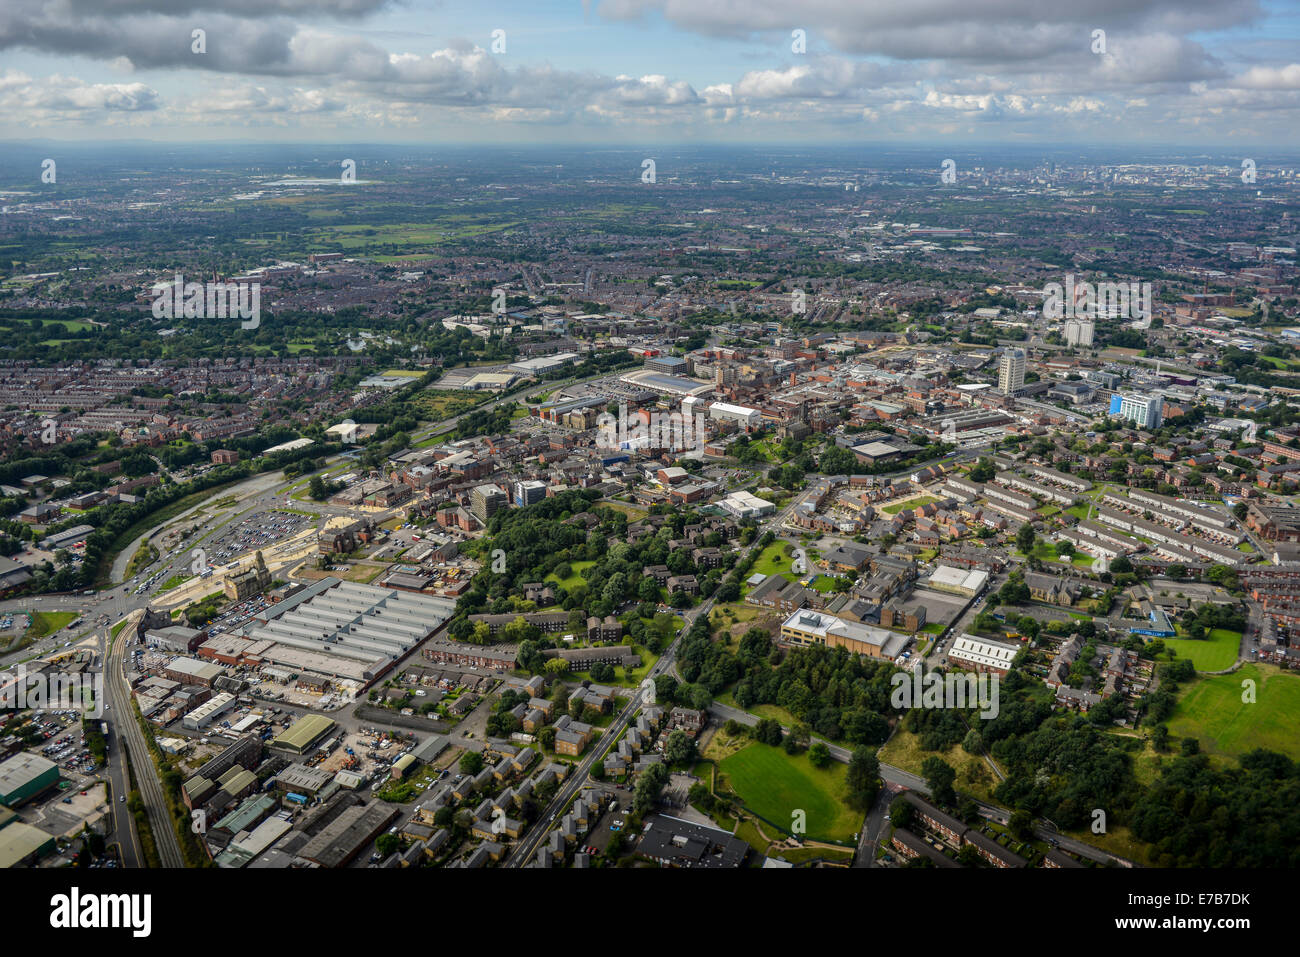 An aerial view across the centre of Oldham, Greater Manchester. Central Manchester is visible in the distance. - Stock Image